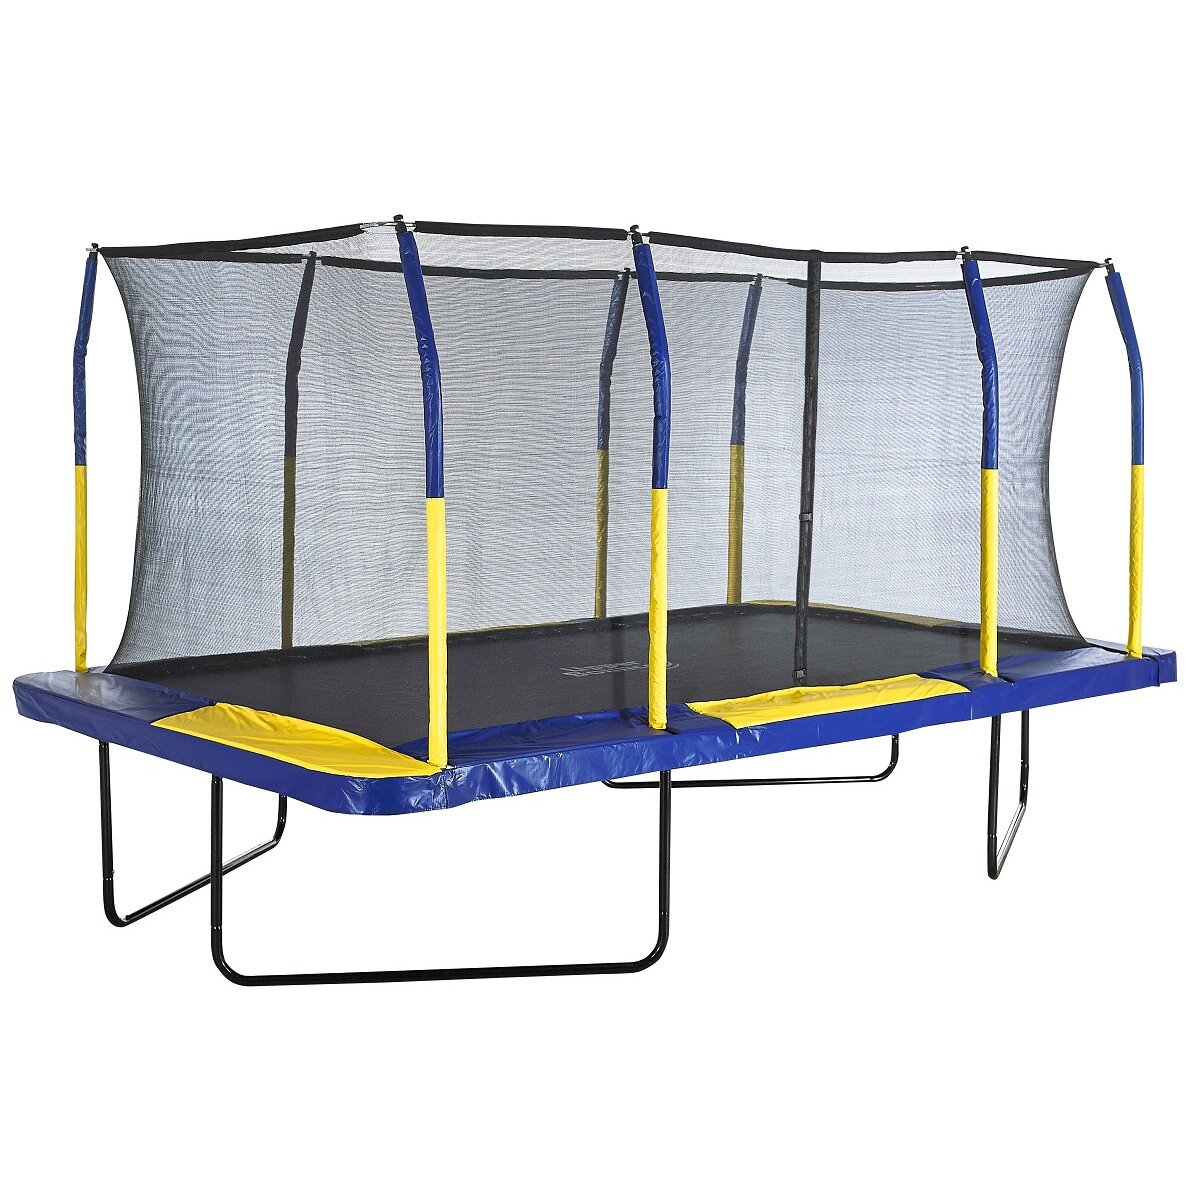 Upper Bounce Spacious 9' X 15' Rectangular Trampoline With